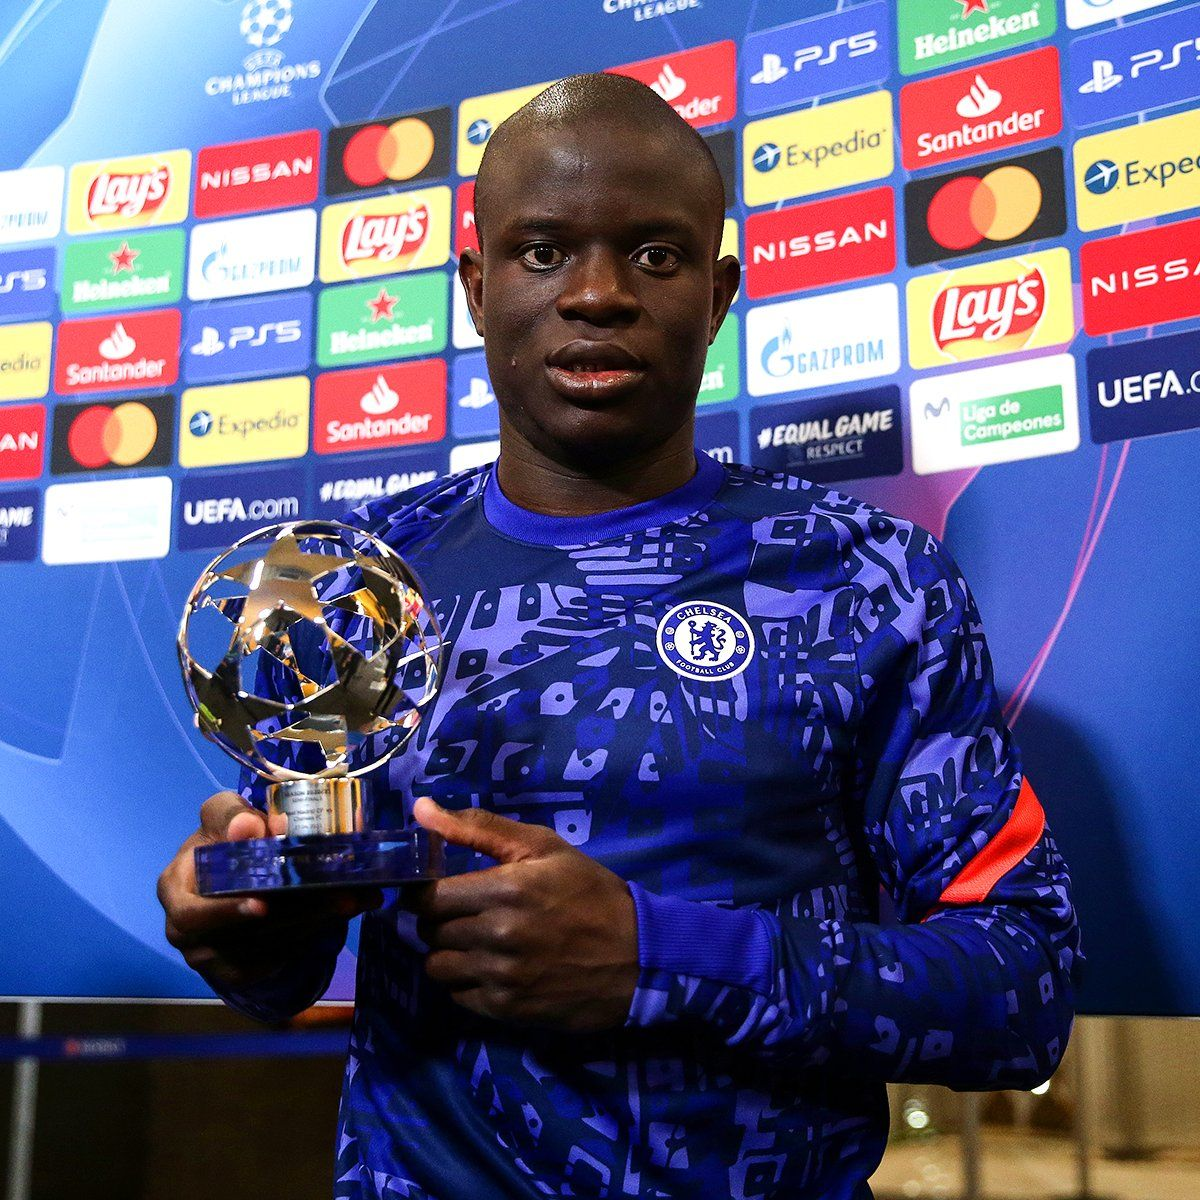 N'Golo Kante wins Champions League Player of the Week after dominant  showing against Real Madrid » Chelsea News